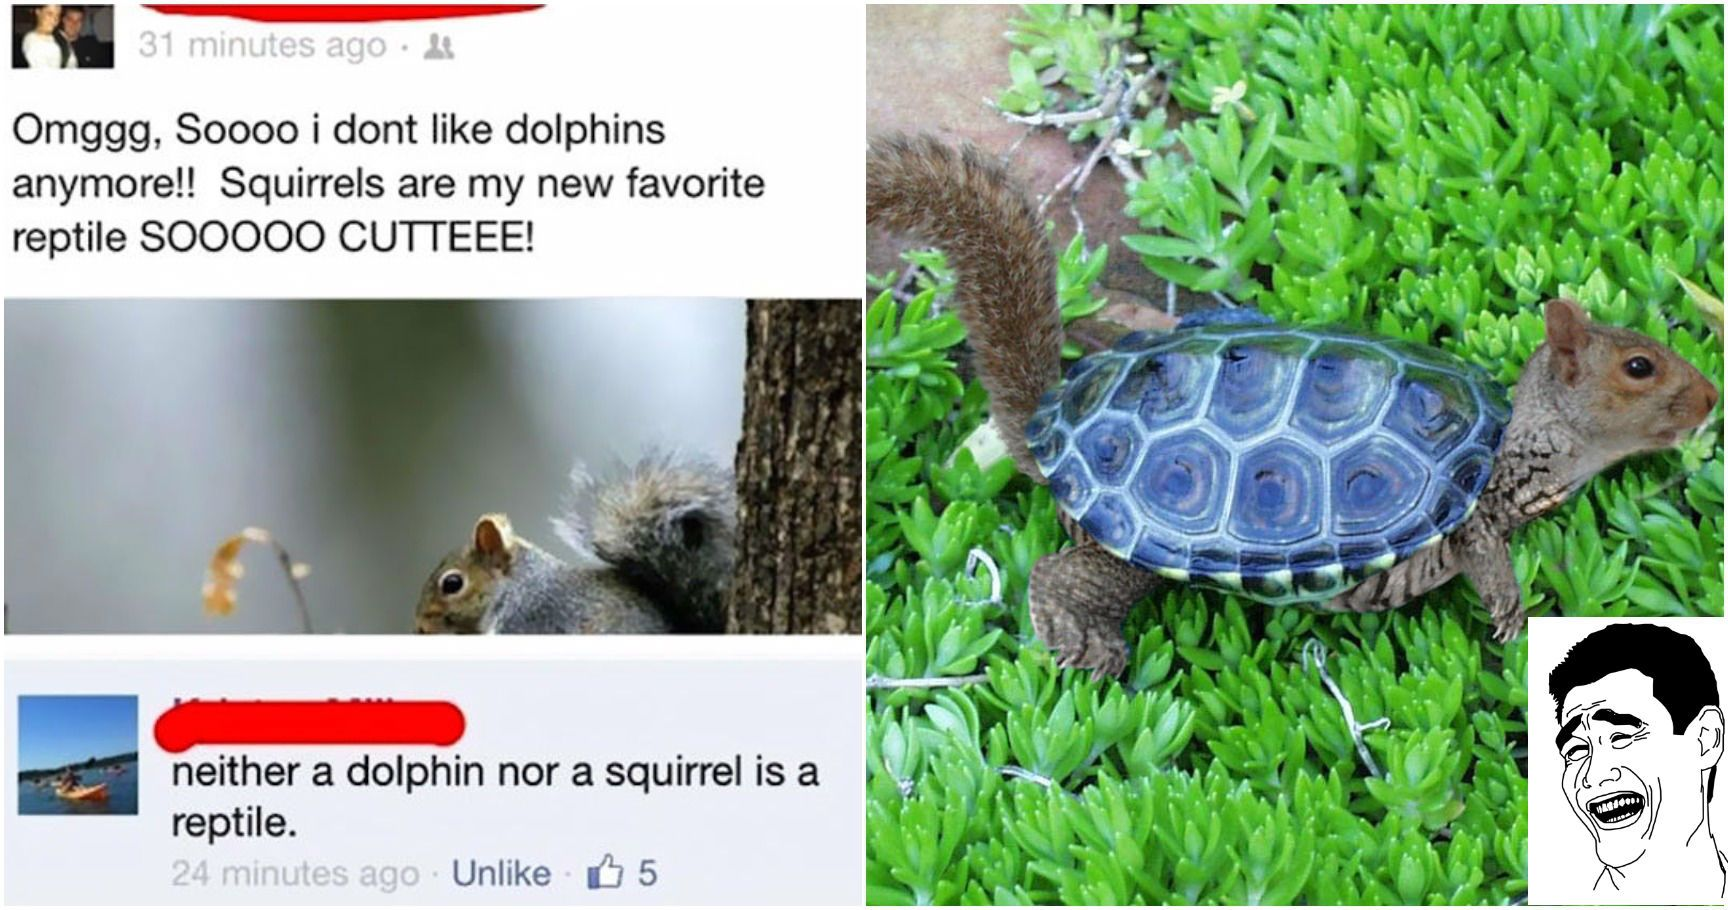 15 Of The Worst Facebook Fails That Will Instantly Make You Feel Smarter